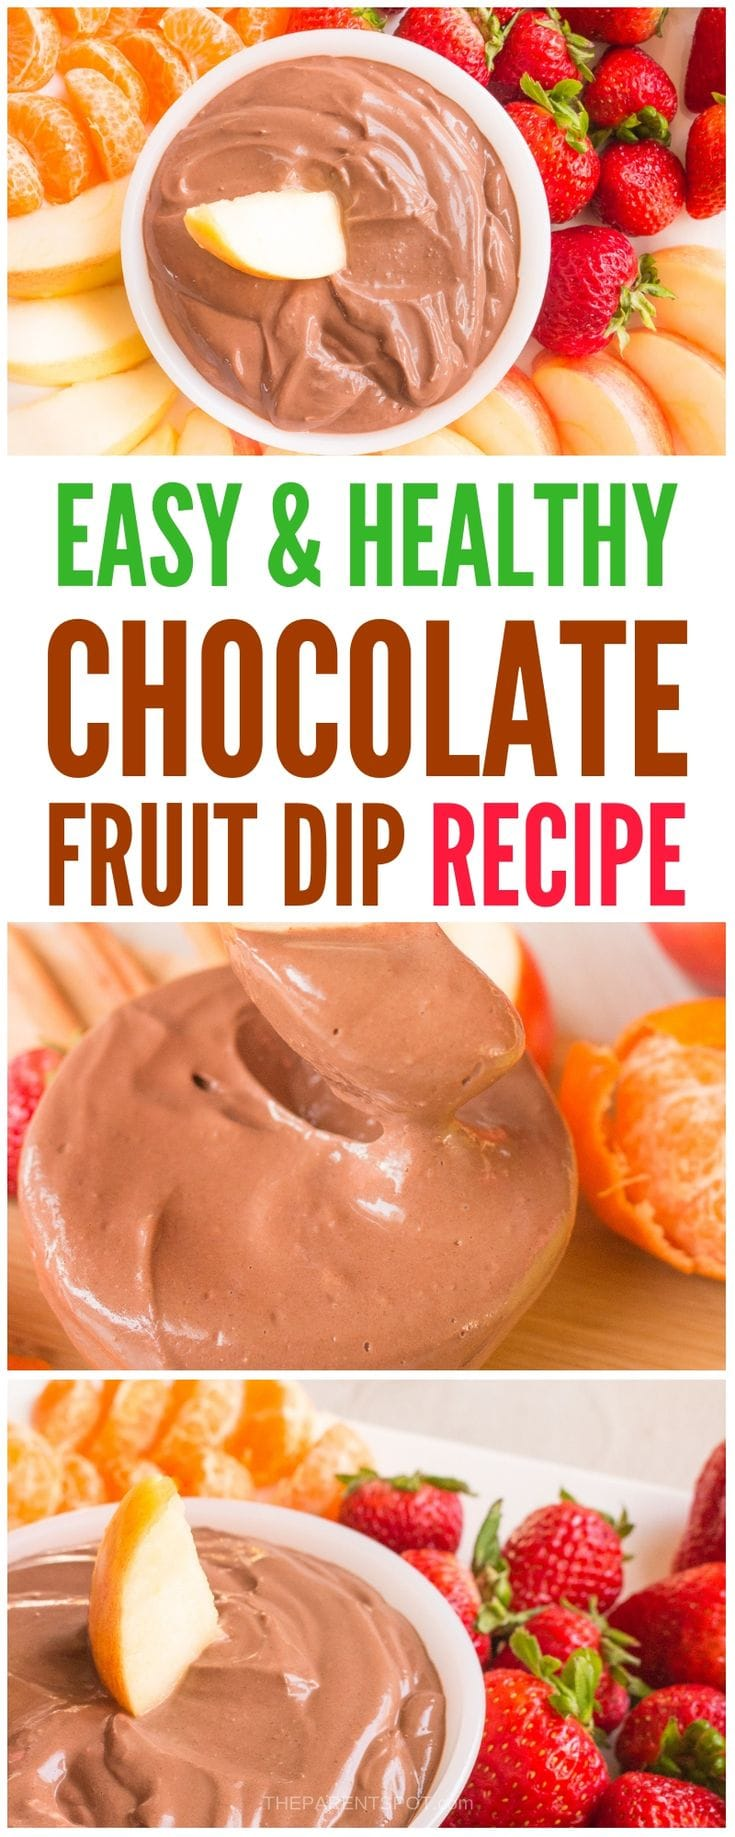 chocolate fruit dip recipe that is easy healthy and made with only 3 ingredients